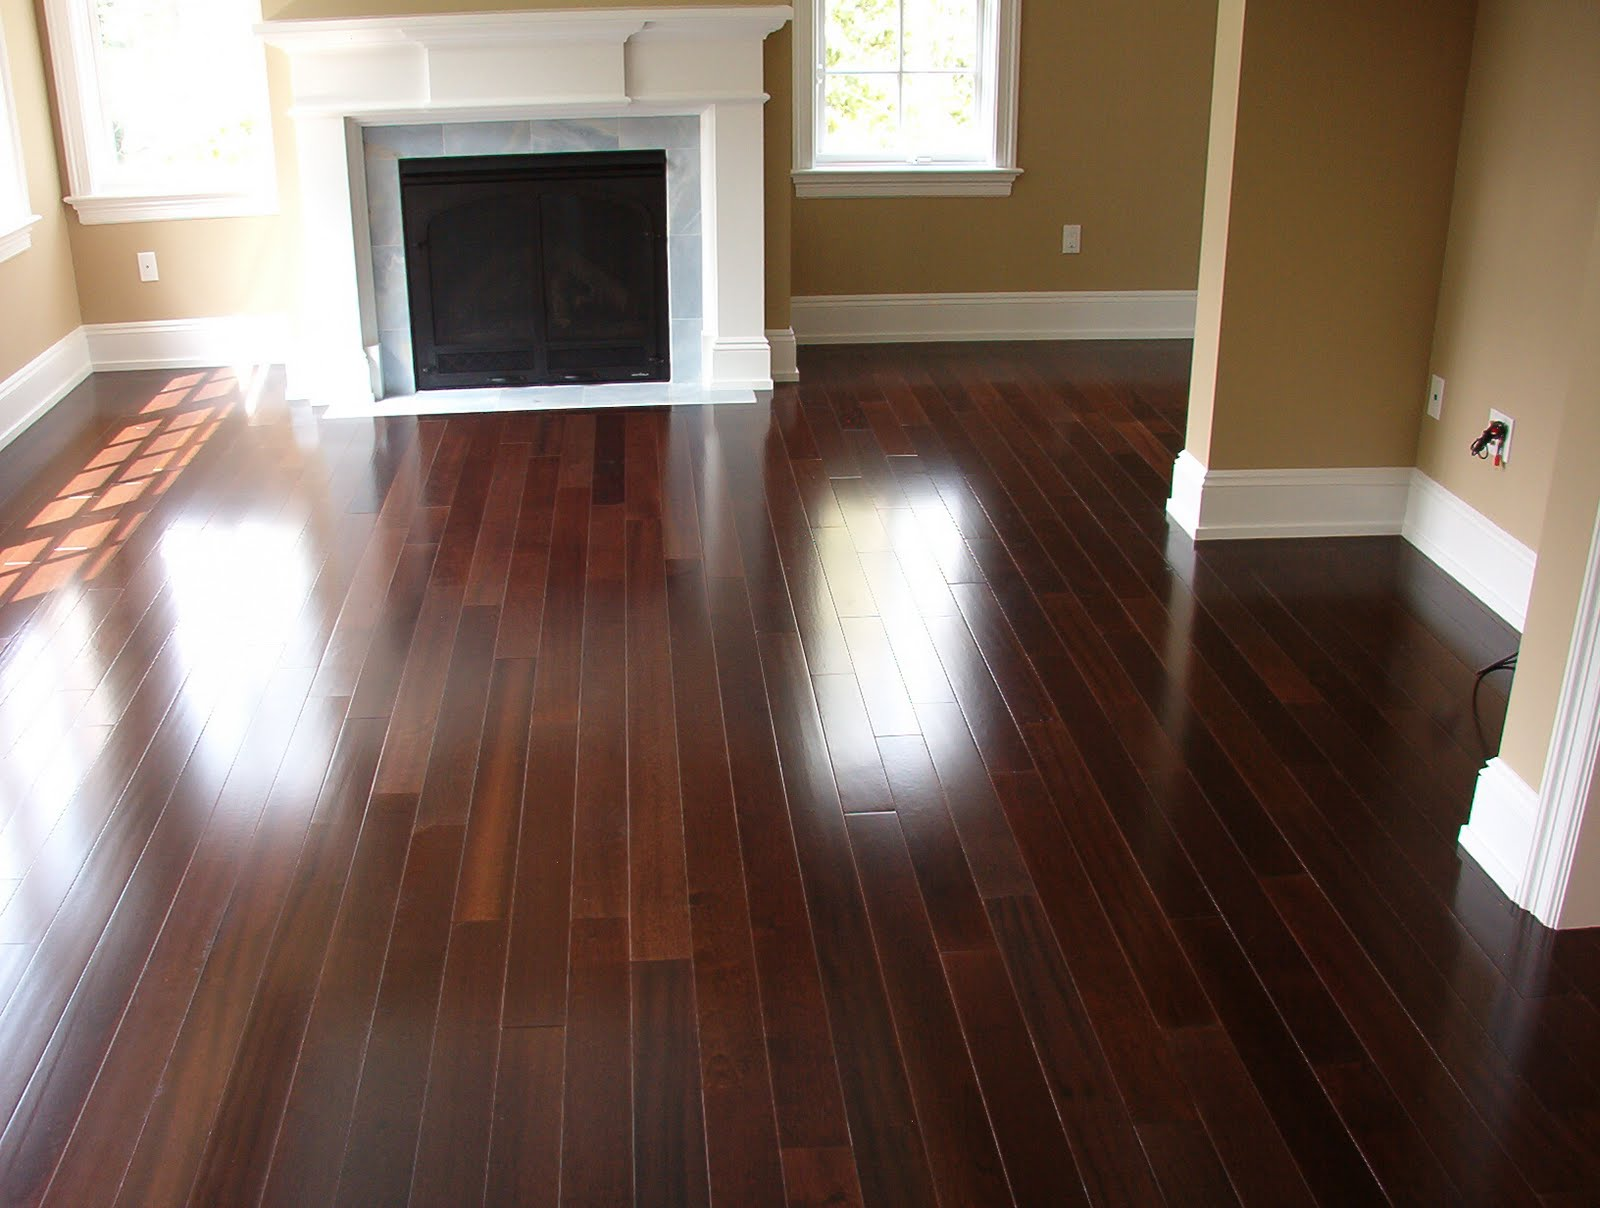 Applegate Wood Floors Blog July 2010